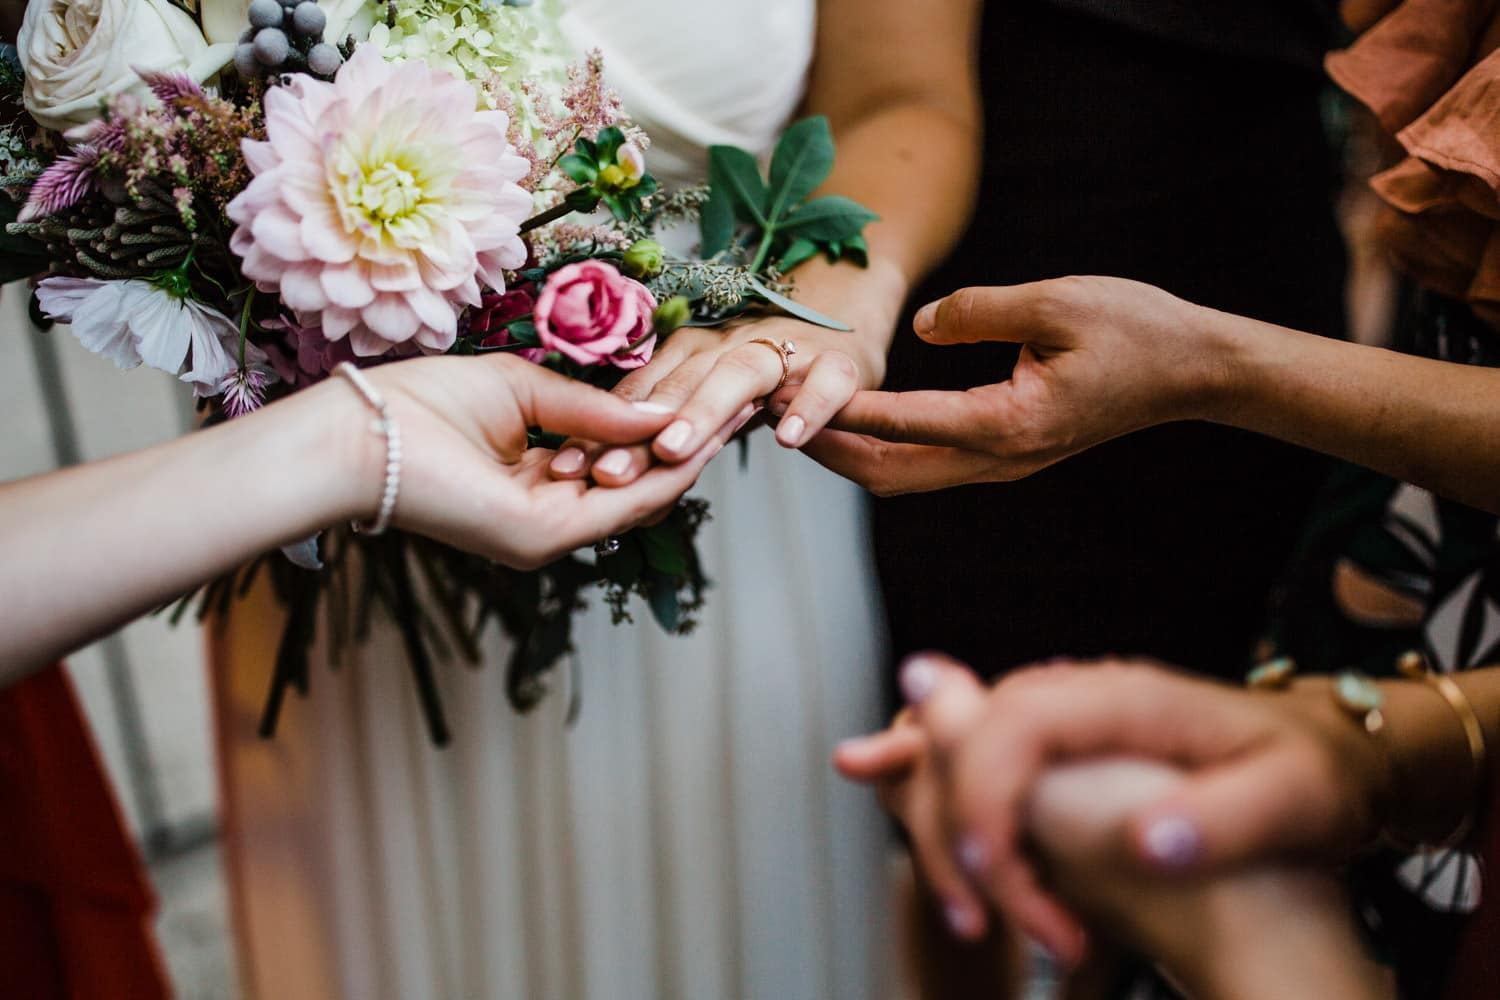 ladies check out bride's new ring - ottawa wedding photographer - carley teresa photography